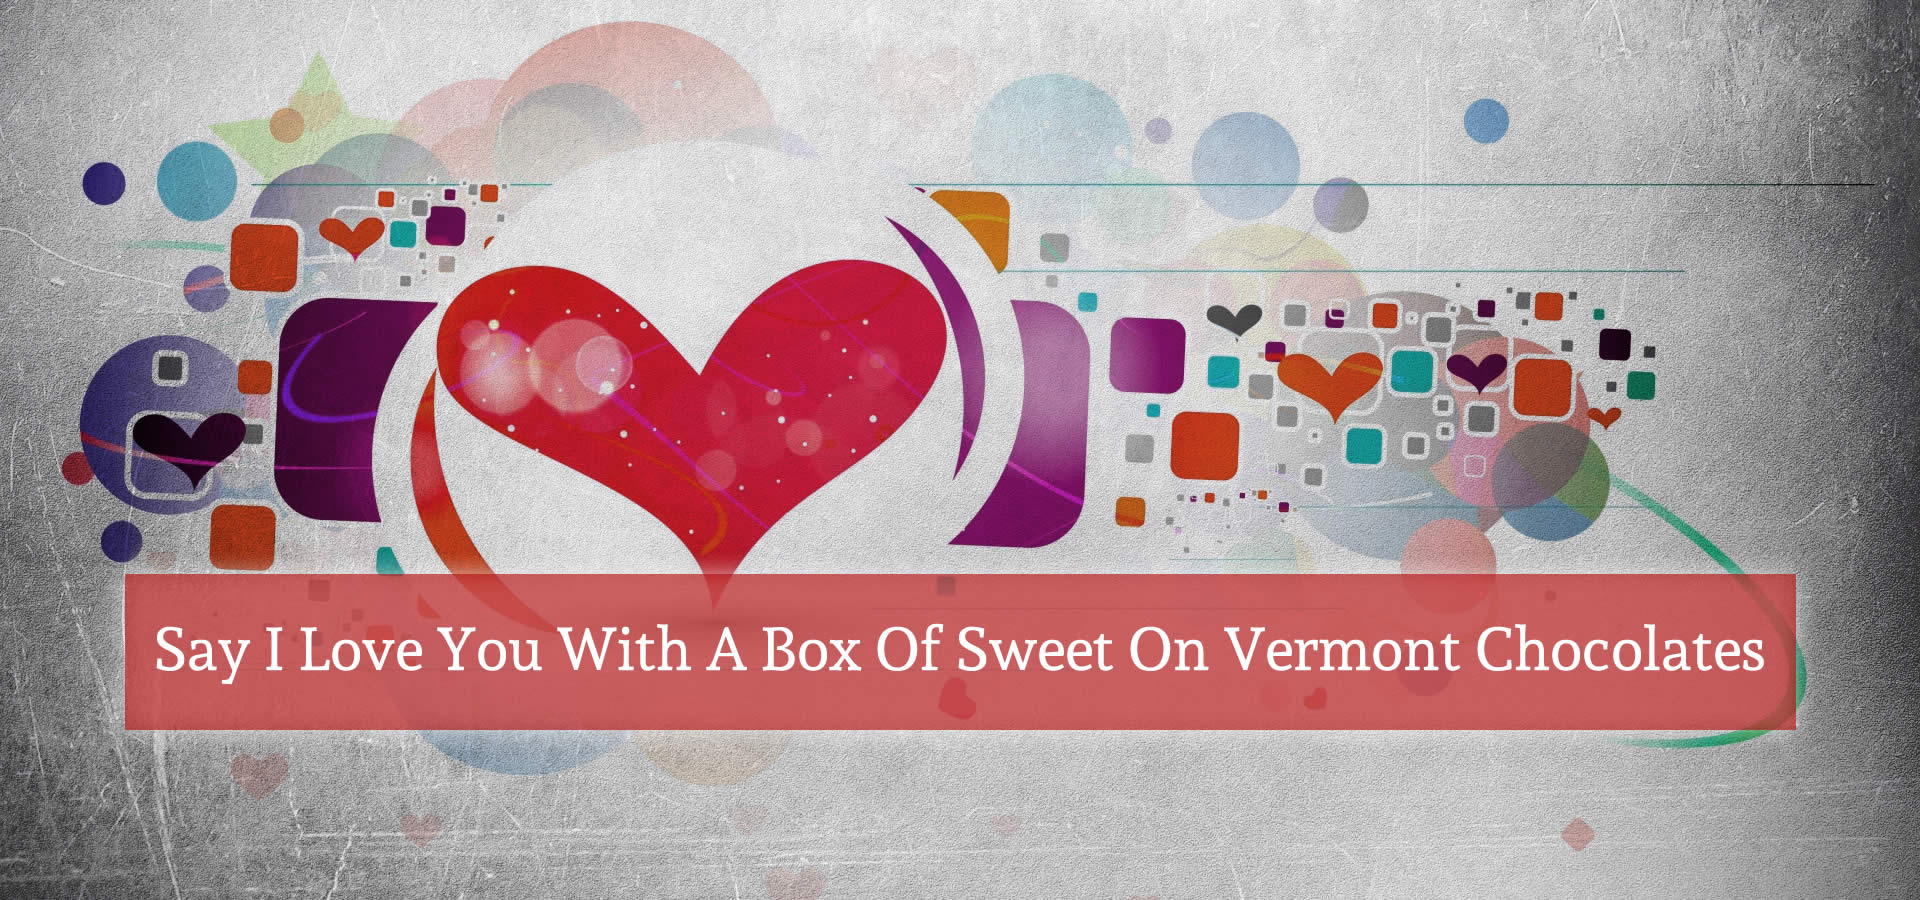 Sweet on Vermont Gourmet Artisan Chocolate Confections